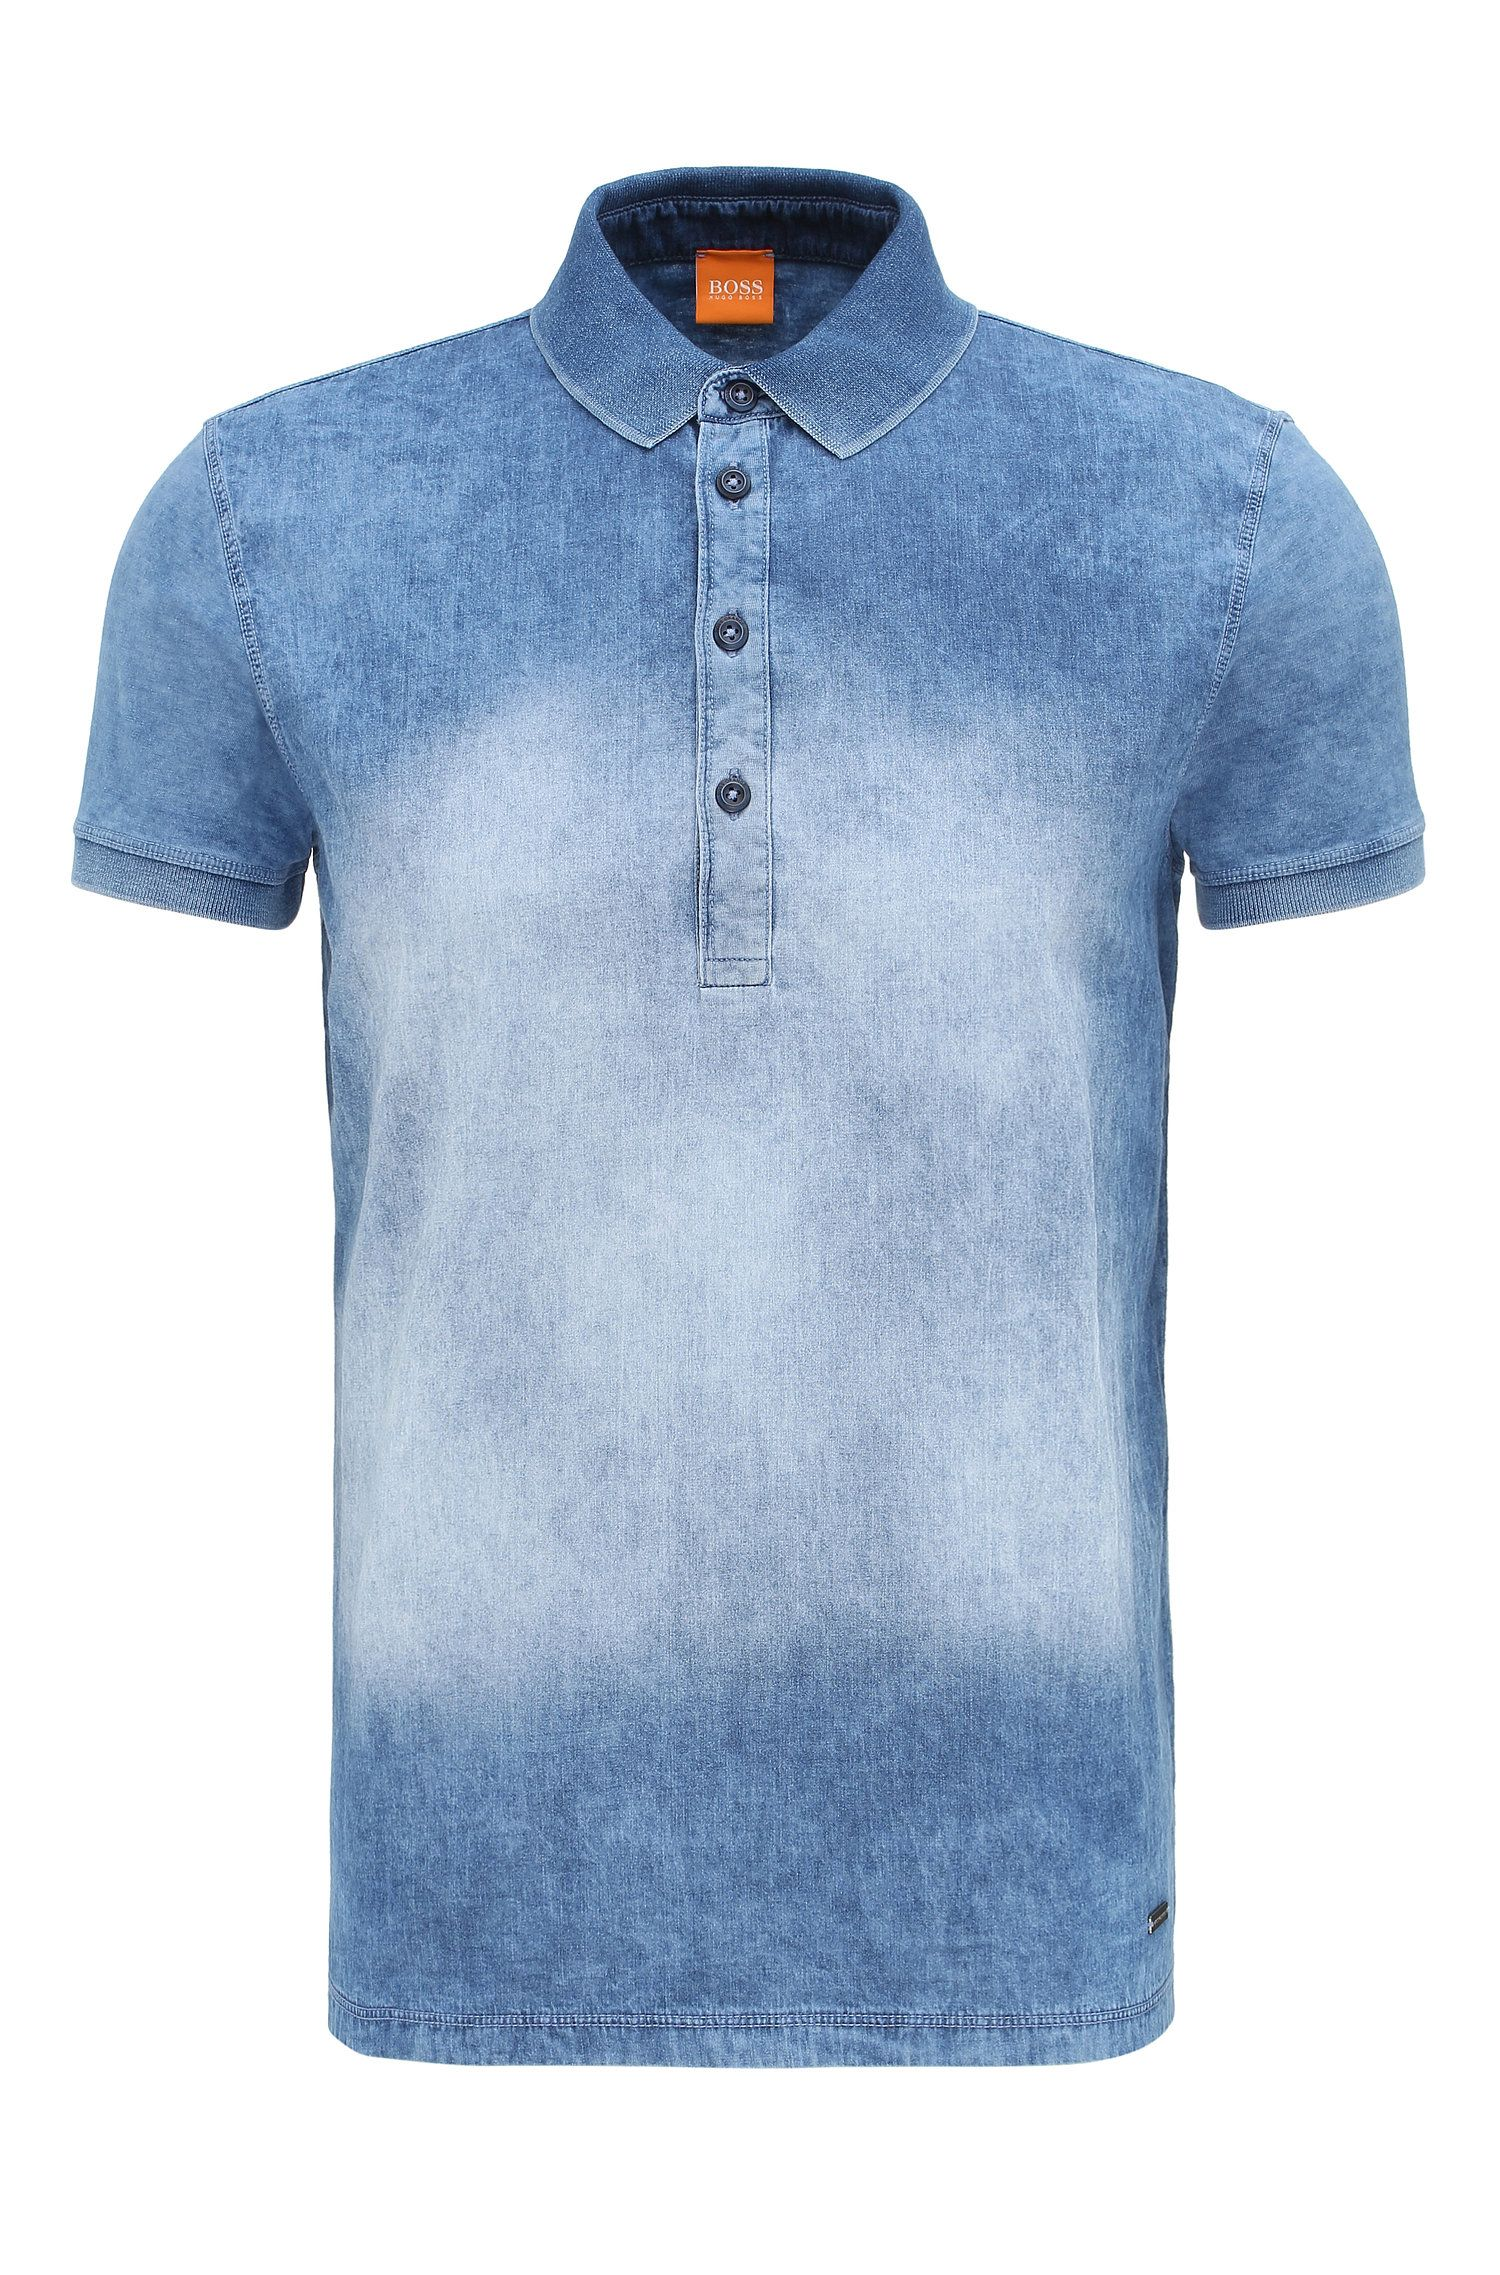 'Pretty' | Relaxed Fit, Cotton Stone Washed Polo Shirt